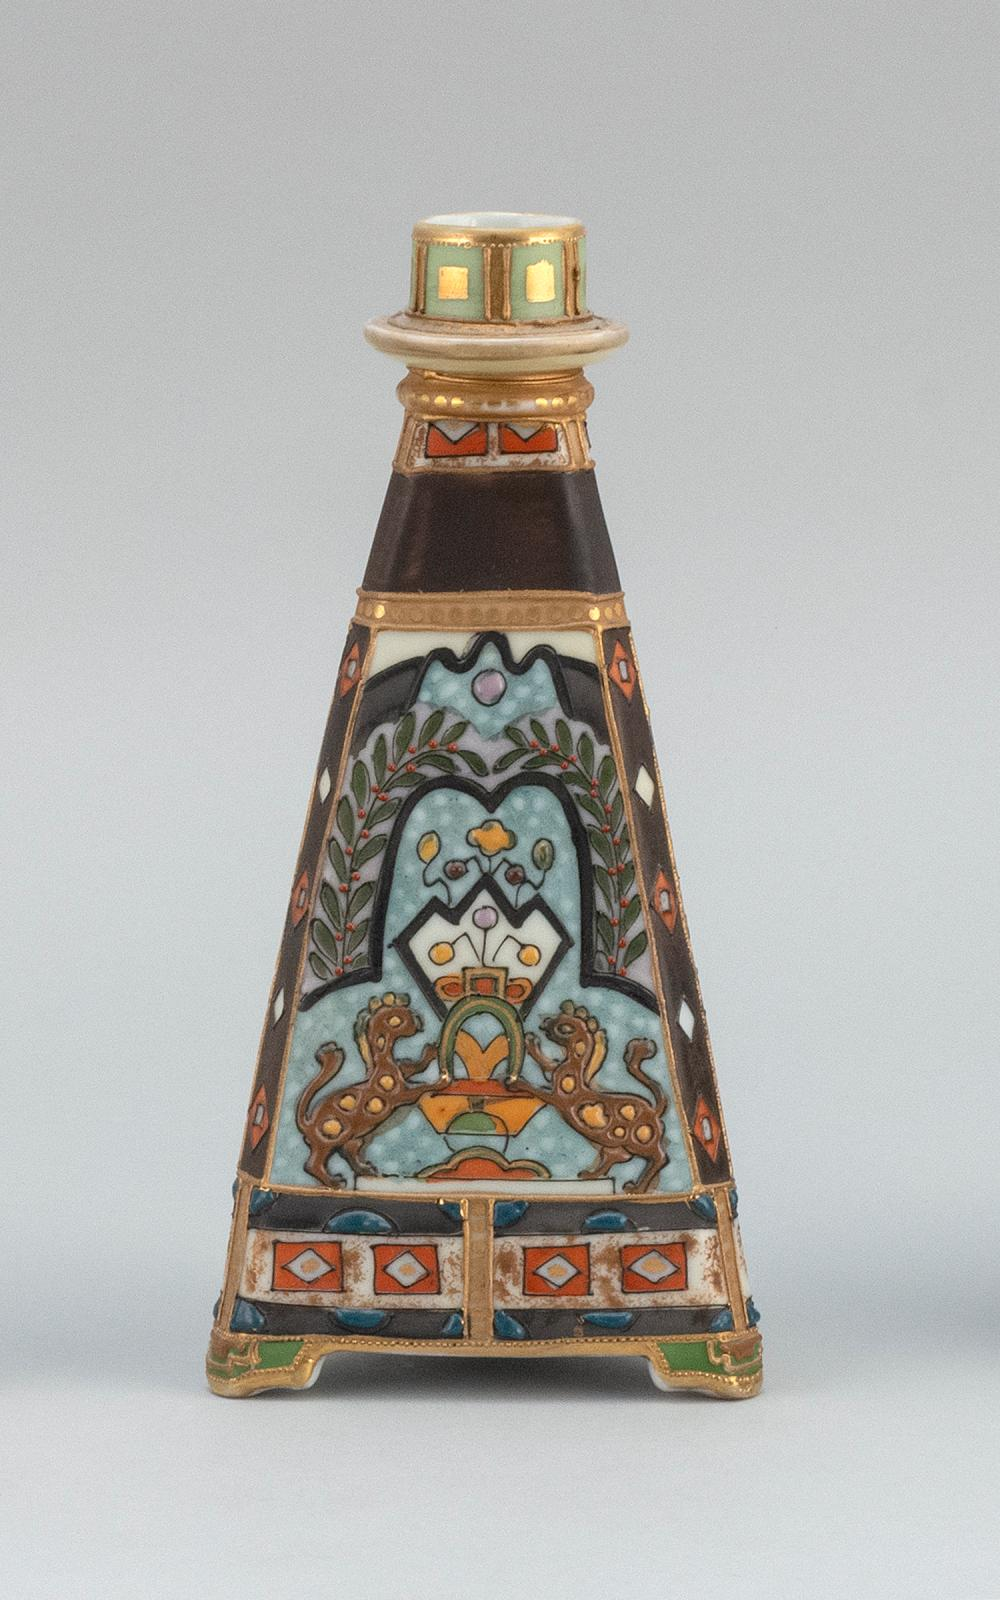 """NIPPON PORCELAIN CANDLESTICK In pyramid form, with relief design of a lion crest. Van Patten #47 mark on base. Height 8""""."""